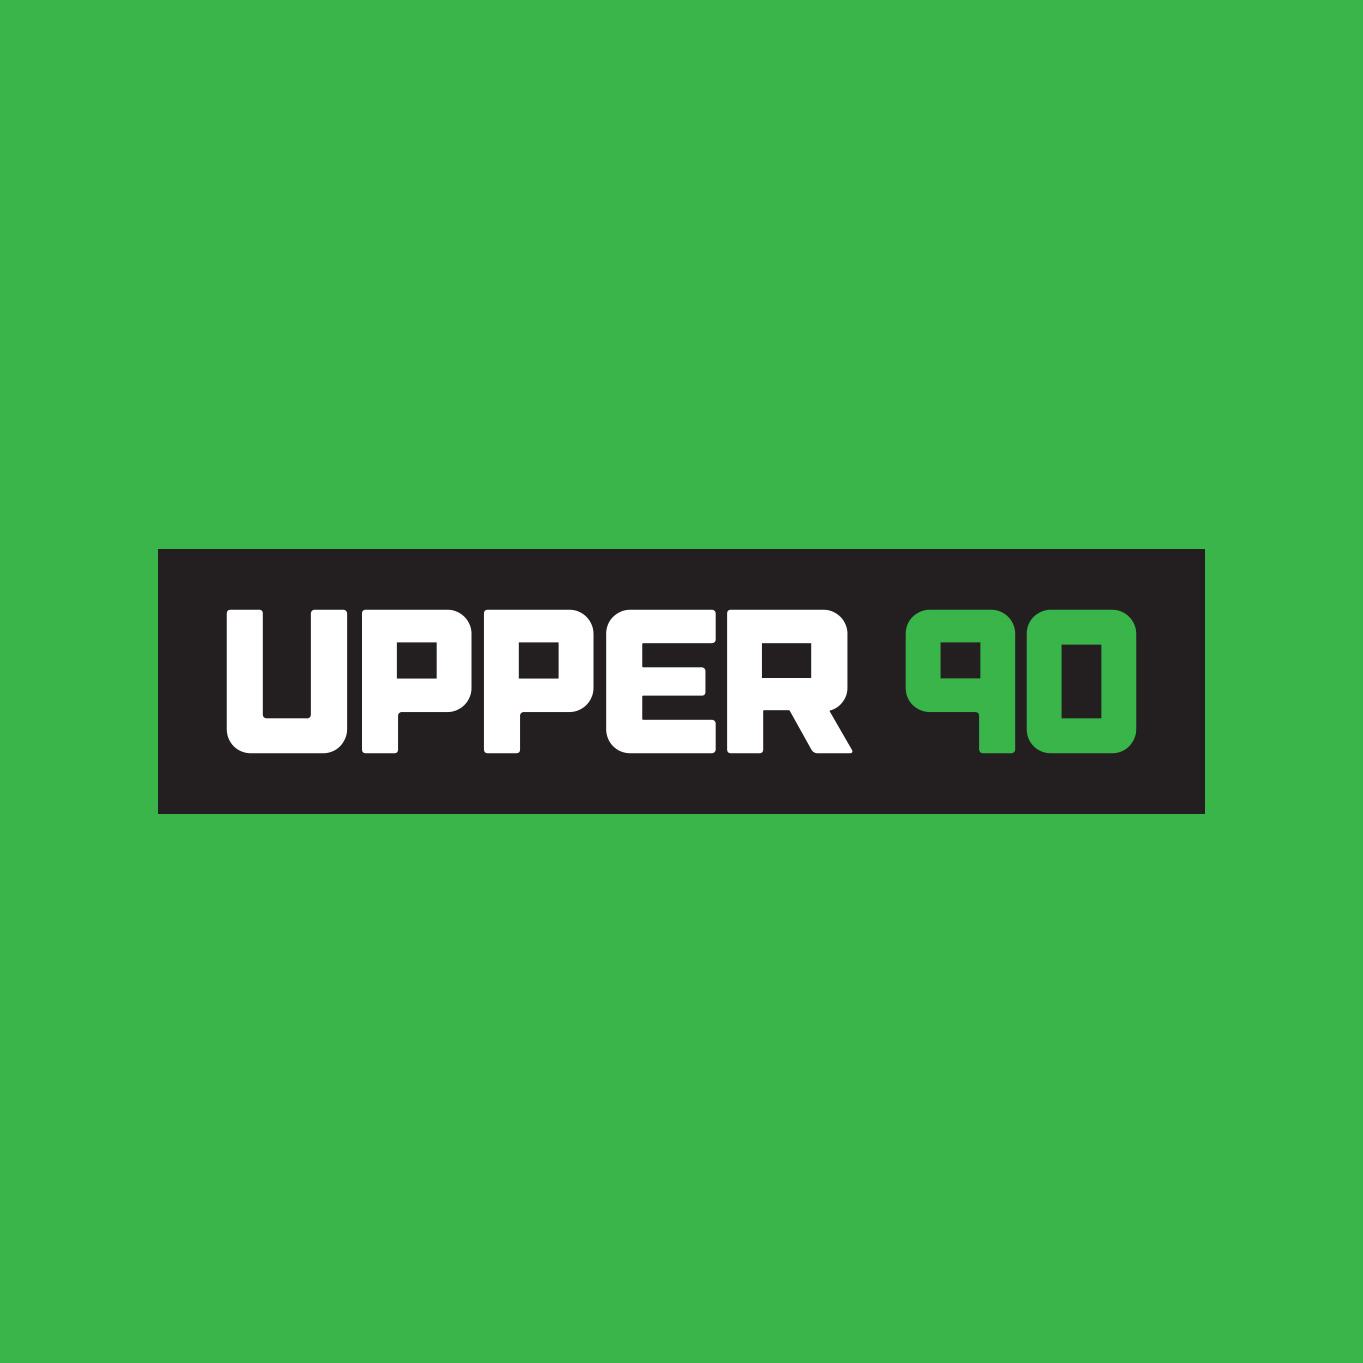 UPPER 90 FC. likes. We train and develop soccer players from youth to high school ages. Our training will prepare these players for competition at 5/5(6).